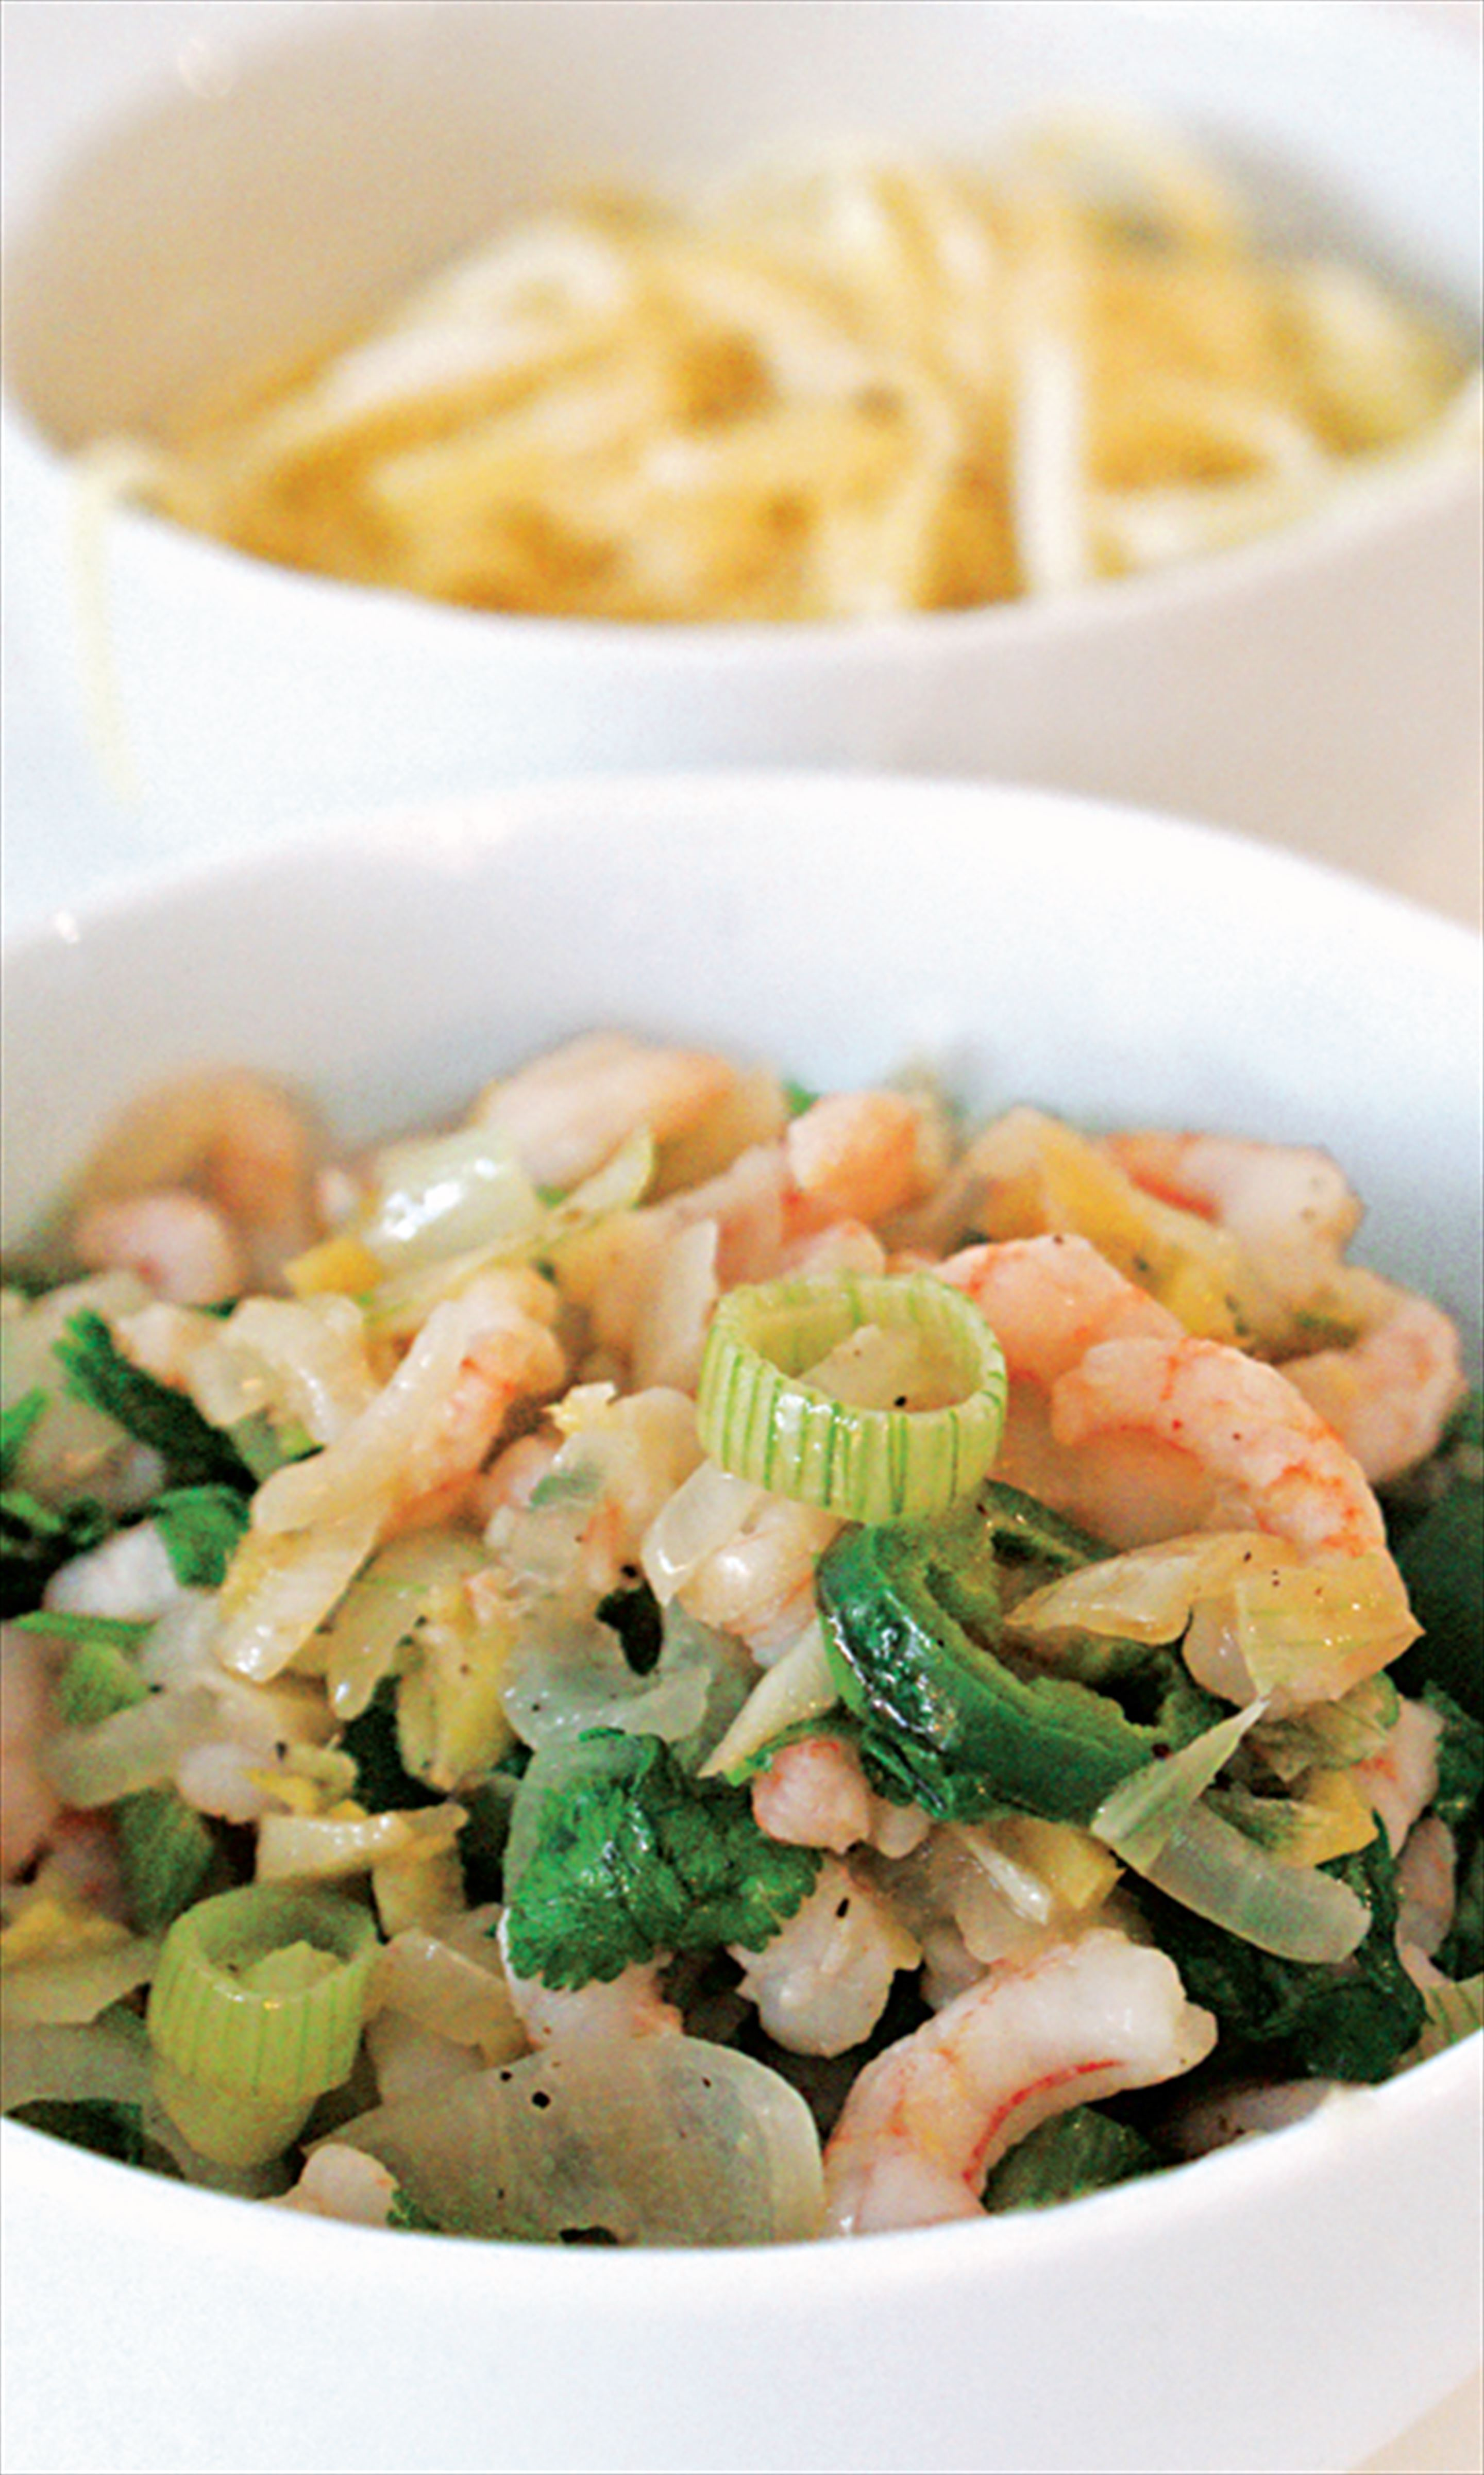 Prawn and coconut stir-fry